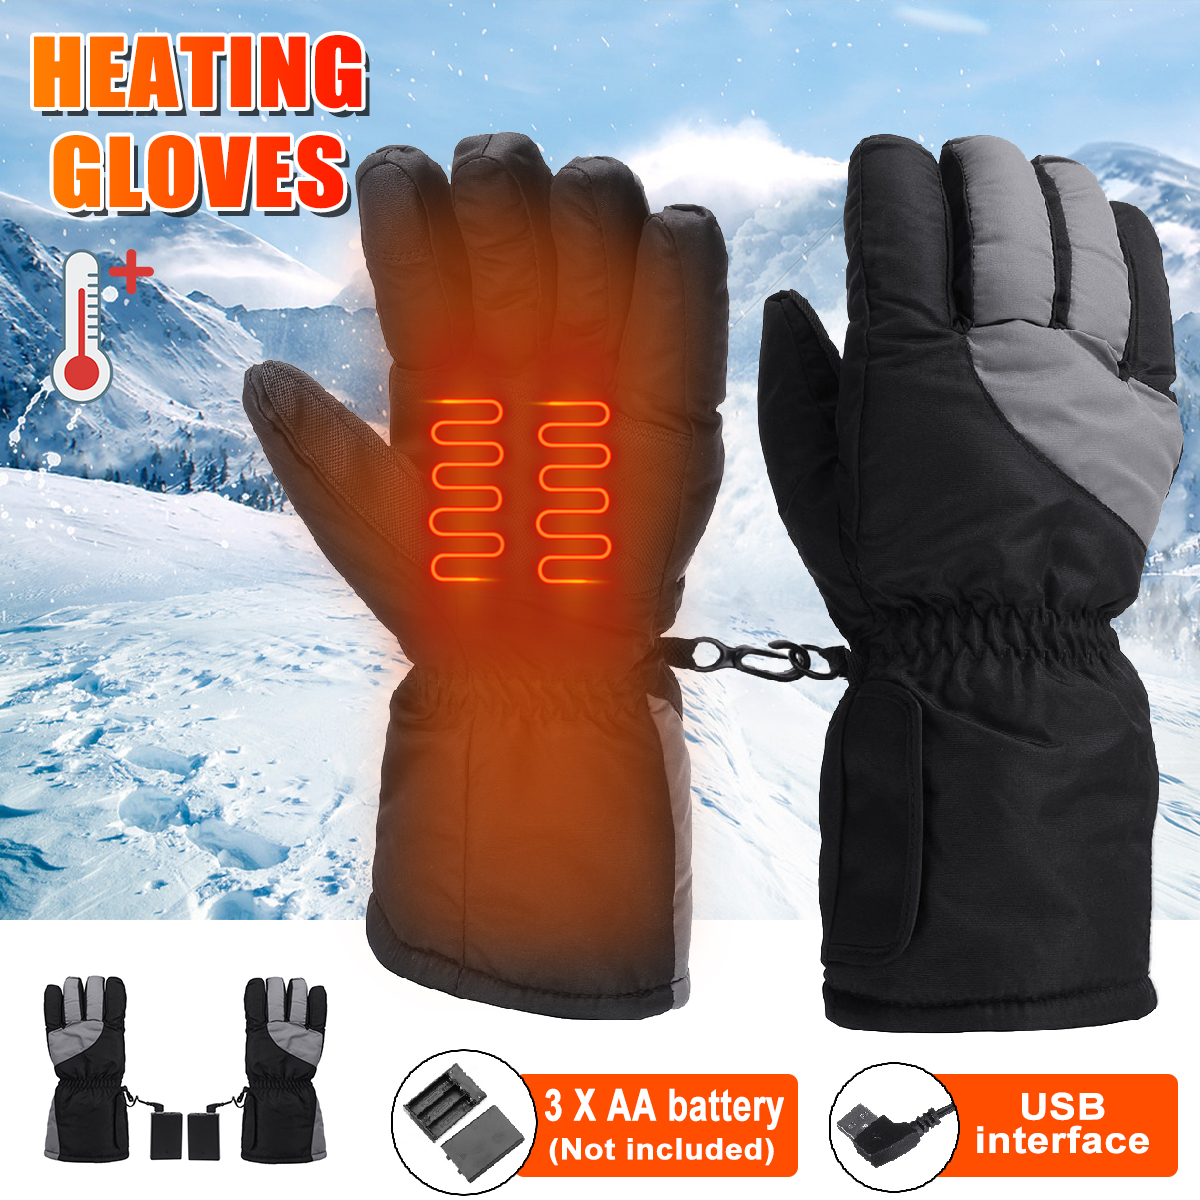 Heated Gloves Battery operated Women Thermal Winter Warm Electric Fishing Skiing